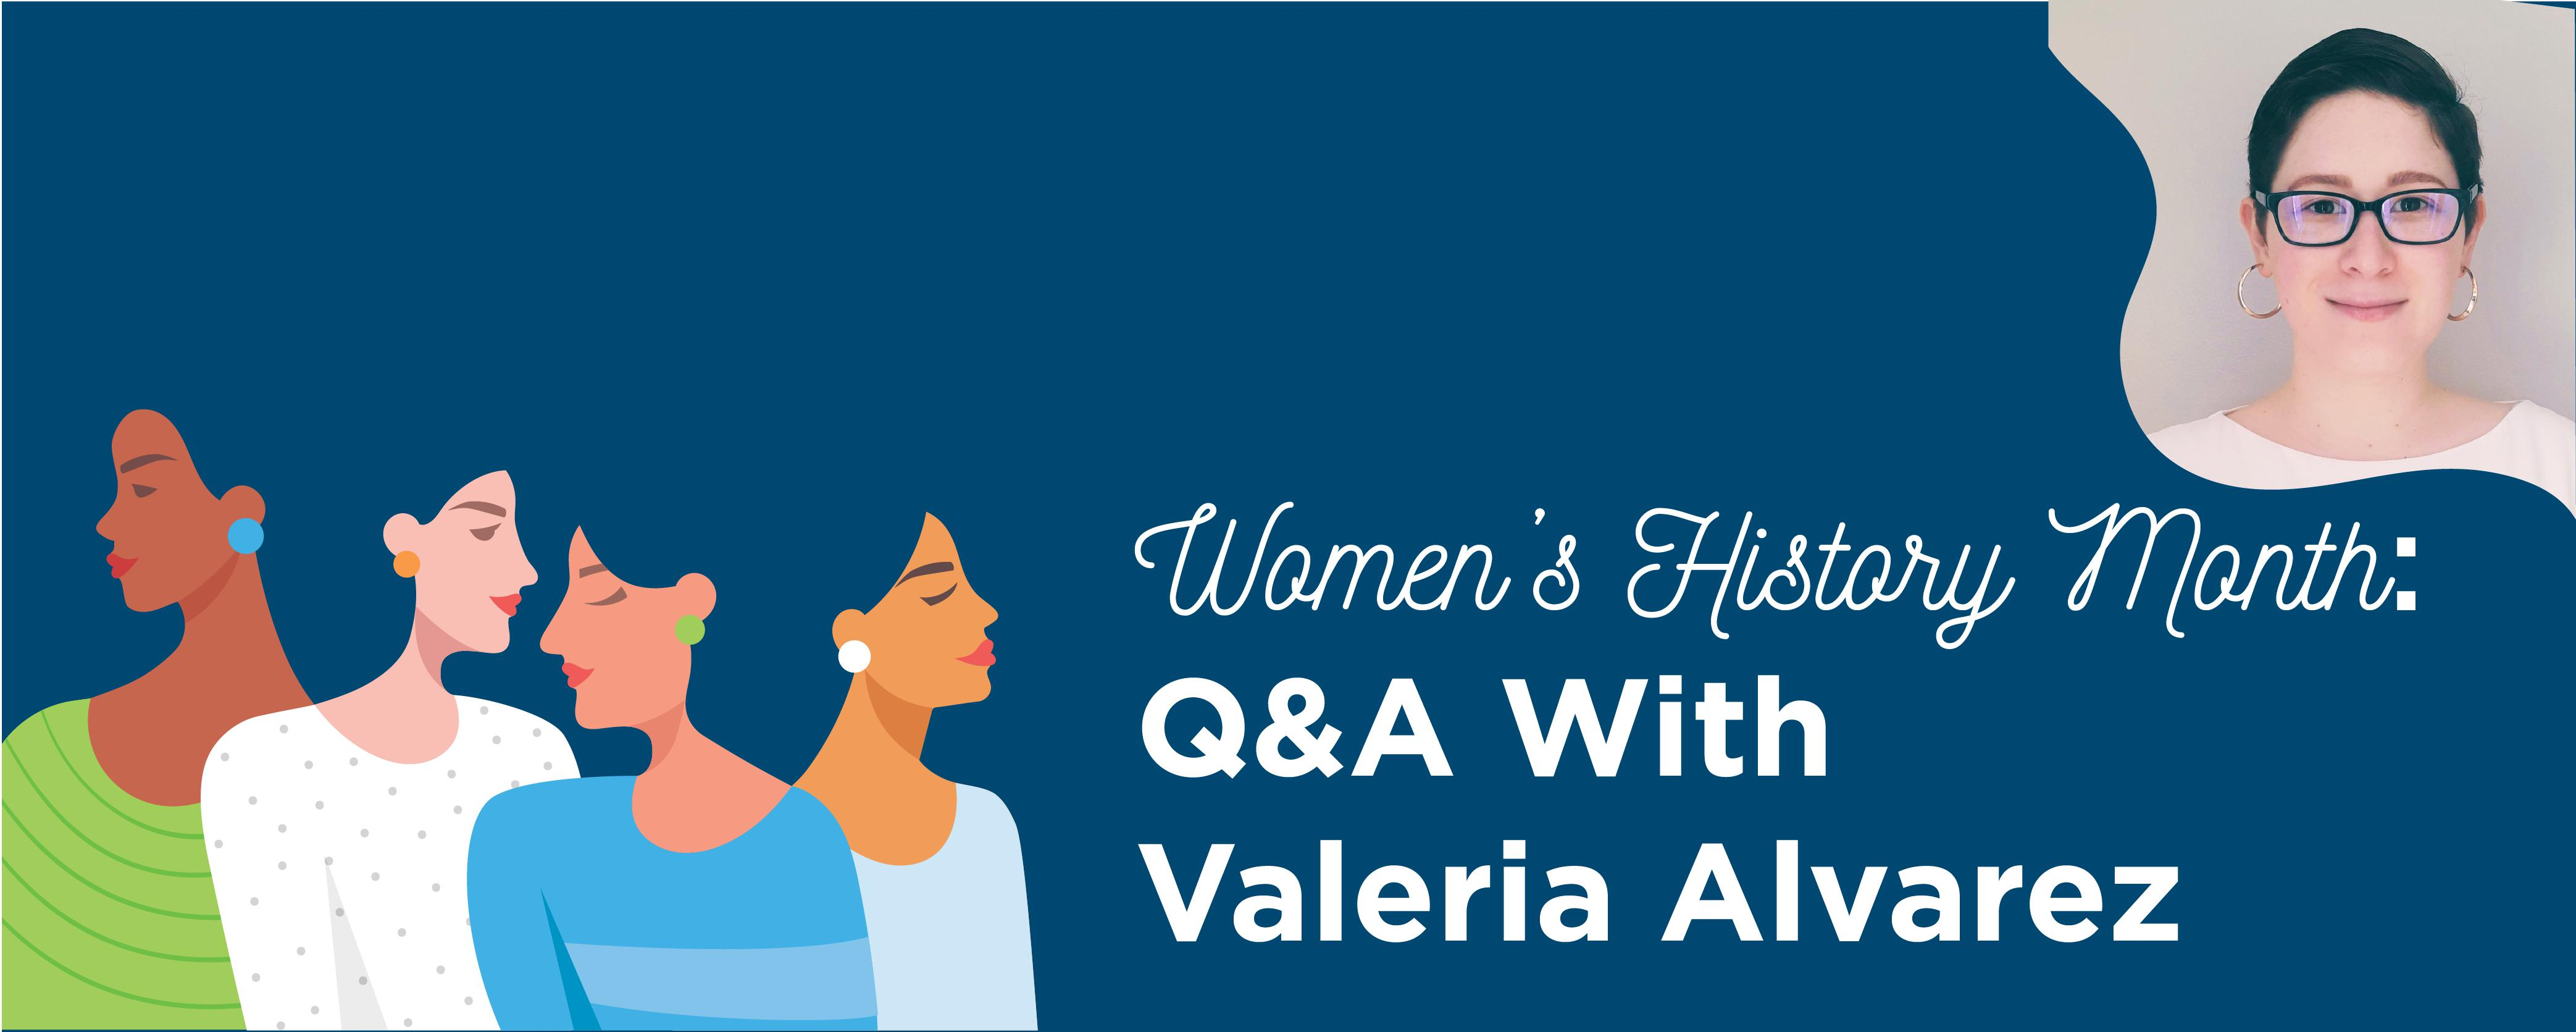 Women's History Month: Q&A With Valeria Alvarez